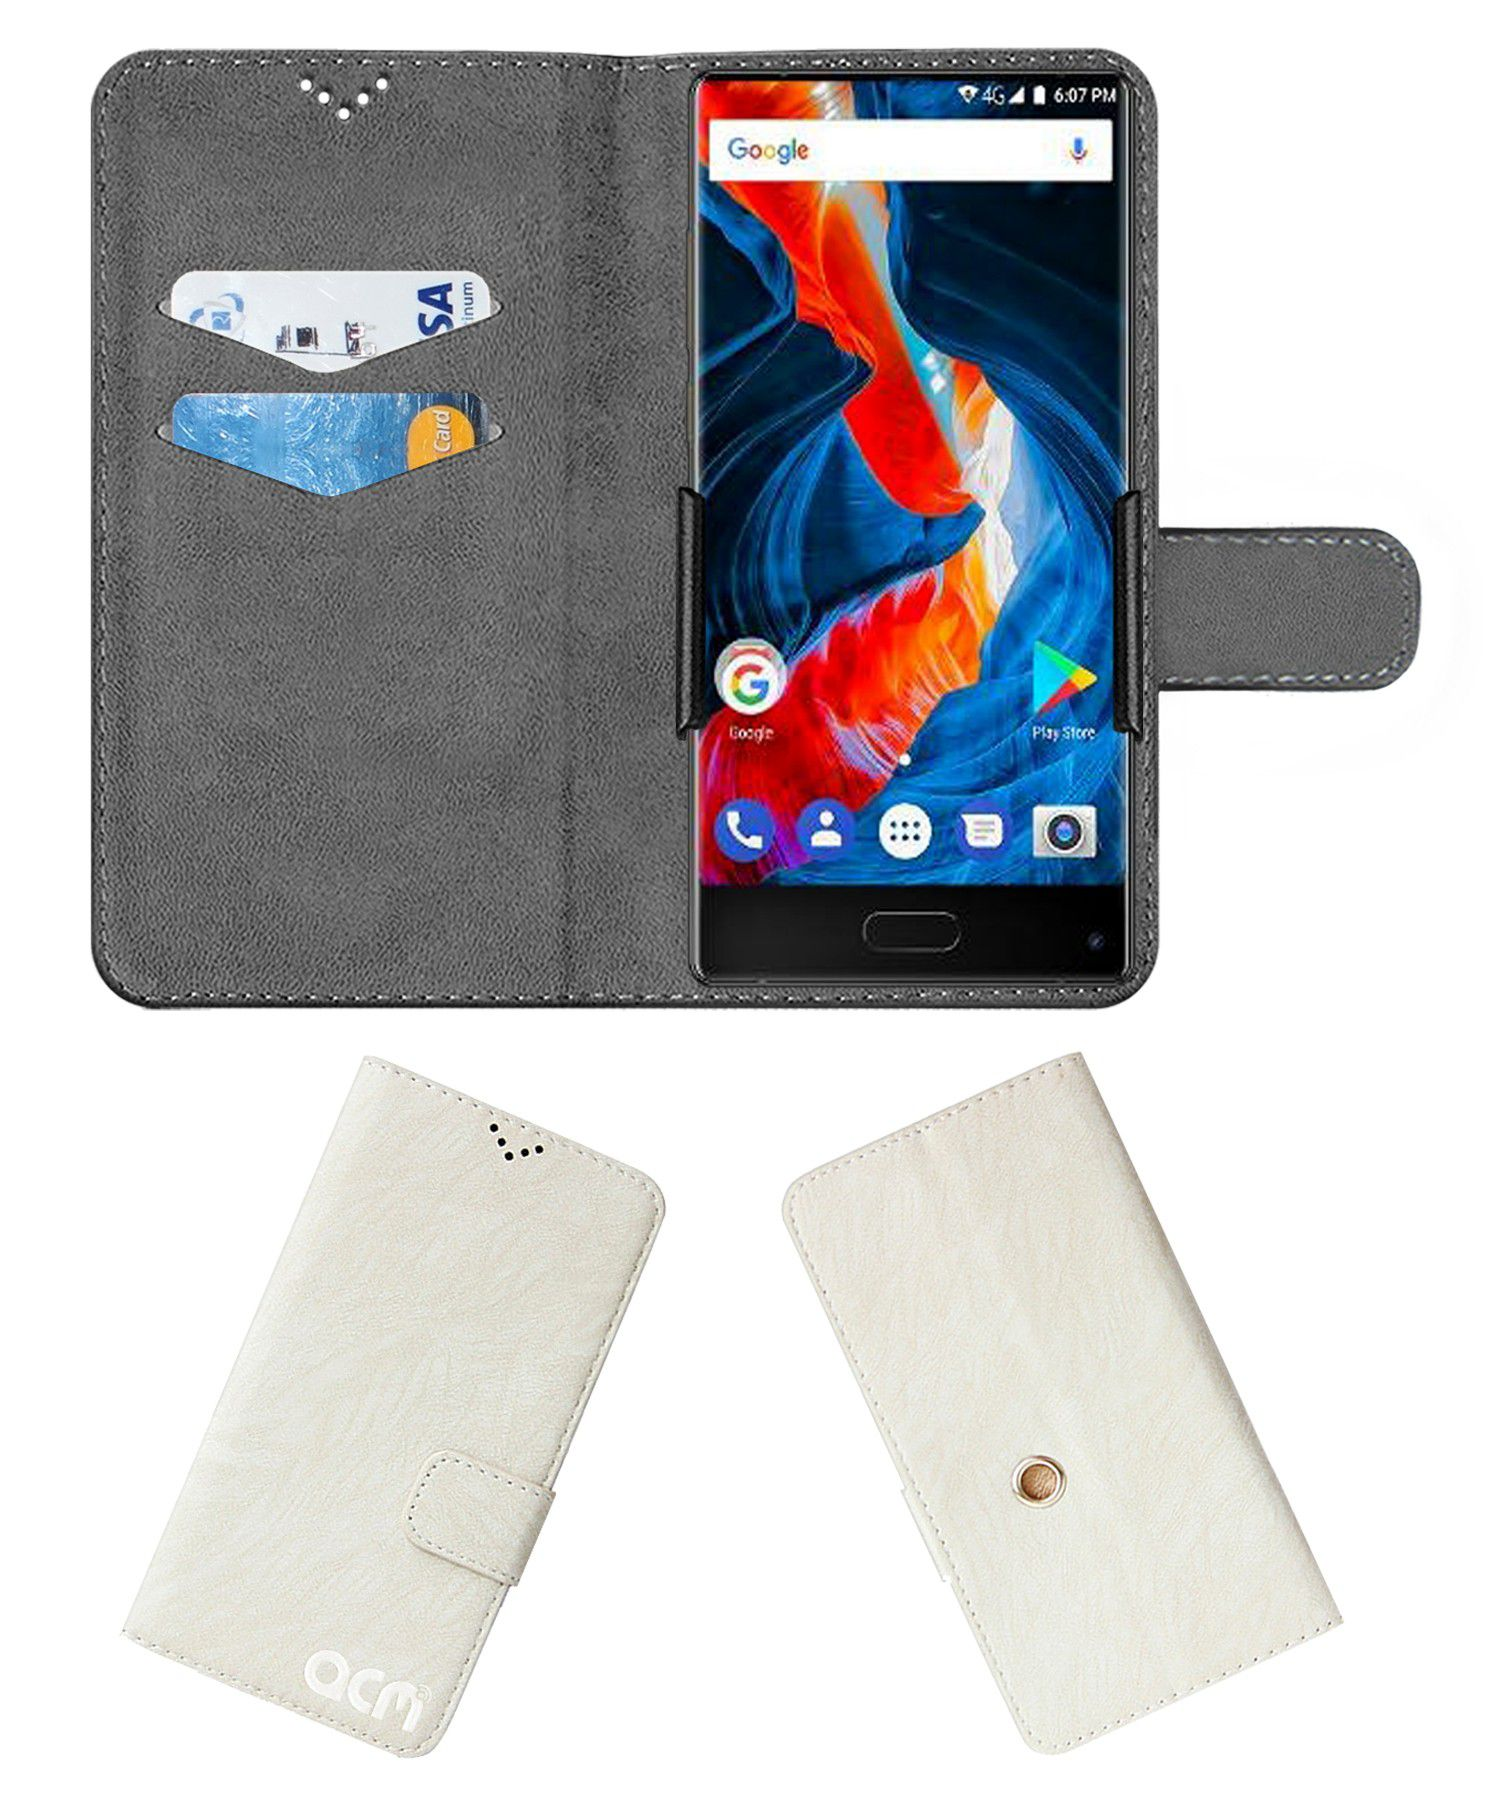 Ulefone MIX Flip Cover by ACM - White Clip holder to hold your mobile securely